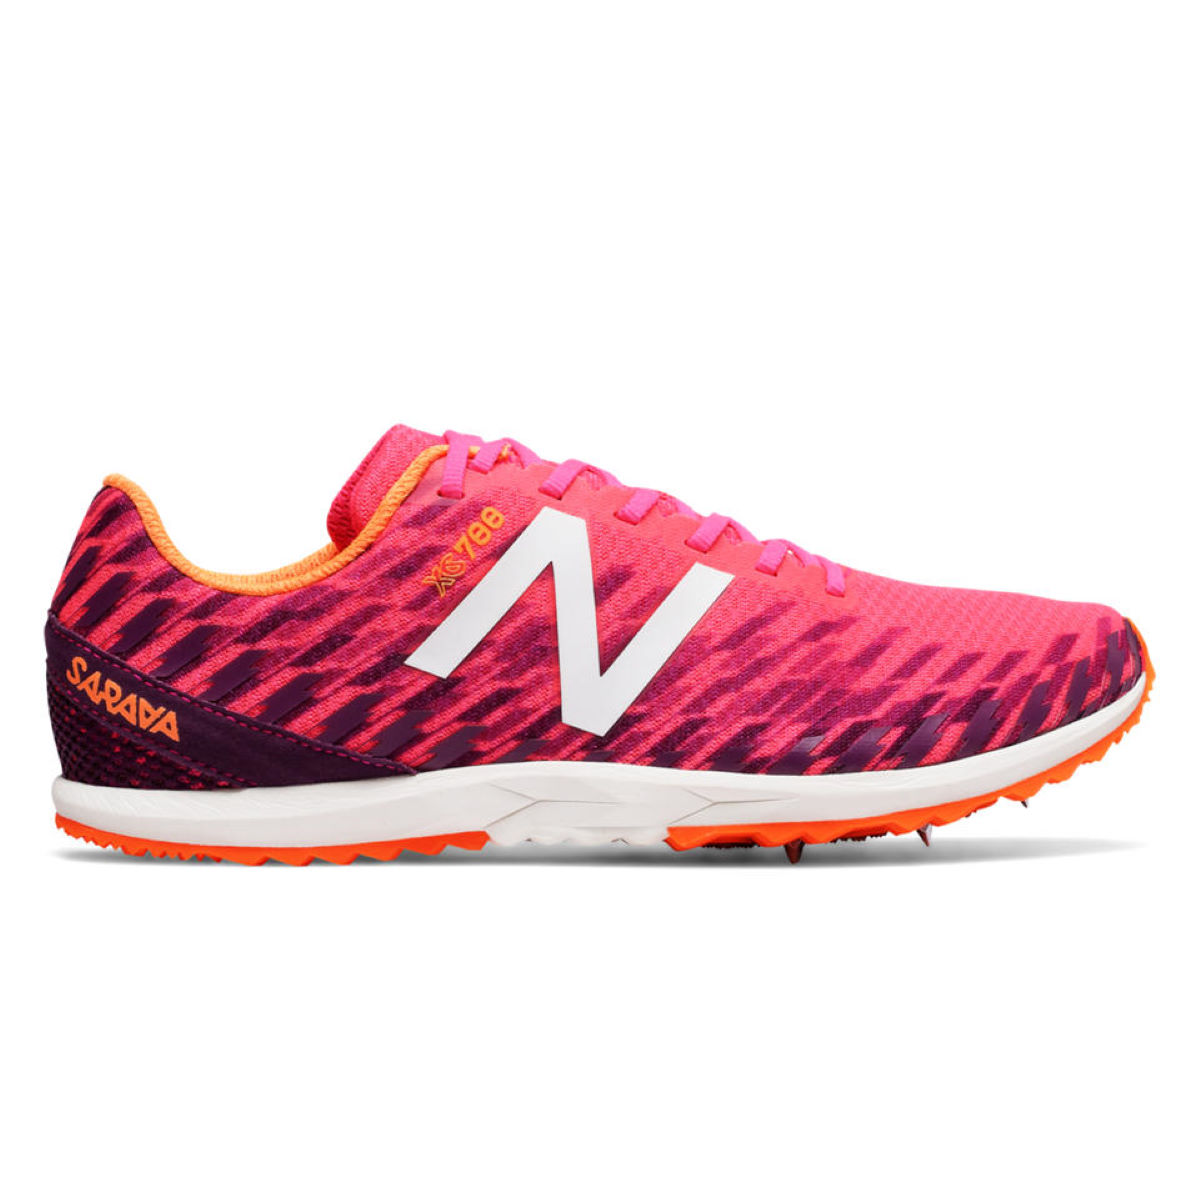 Chaussures de cross-country Femme New Balance 700 (à pointes) - UK 6.5